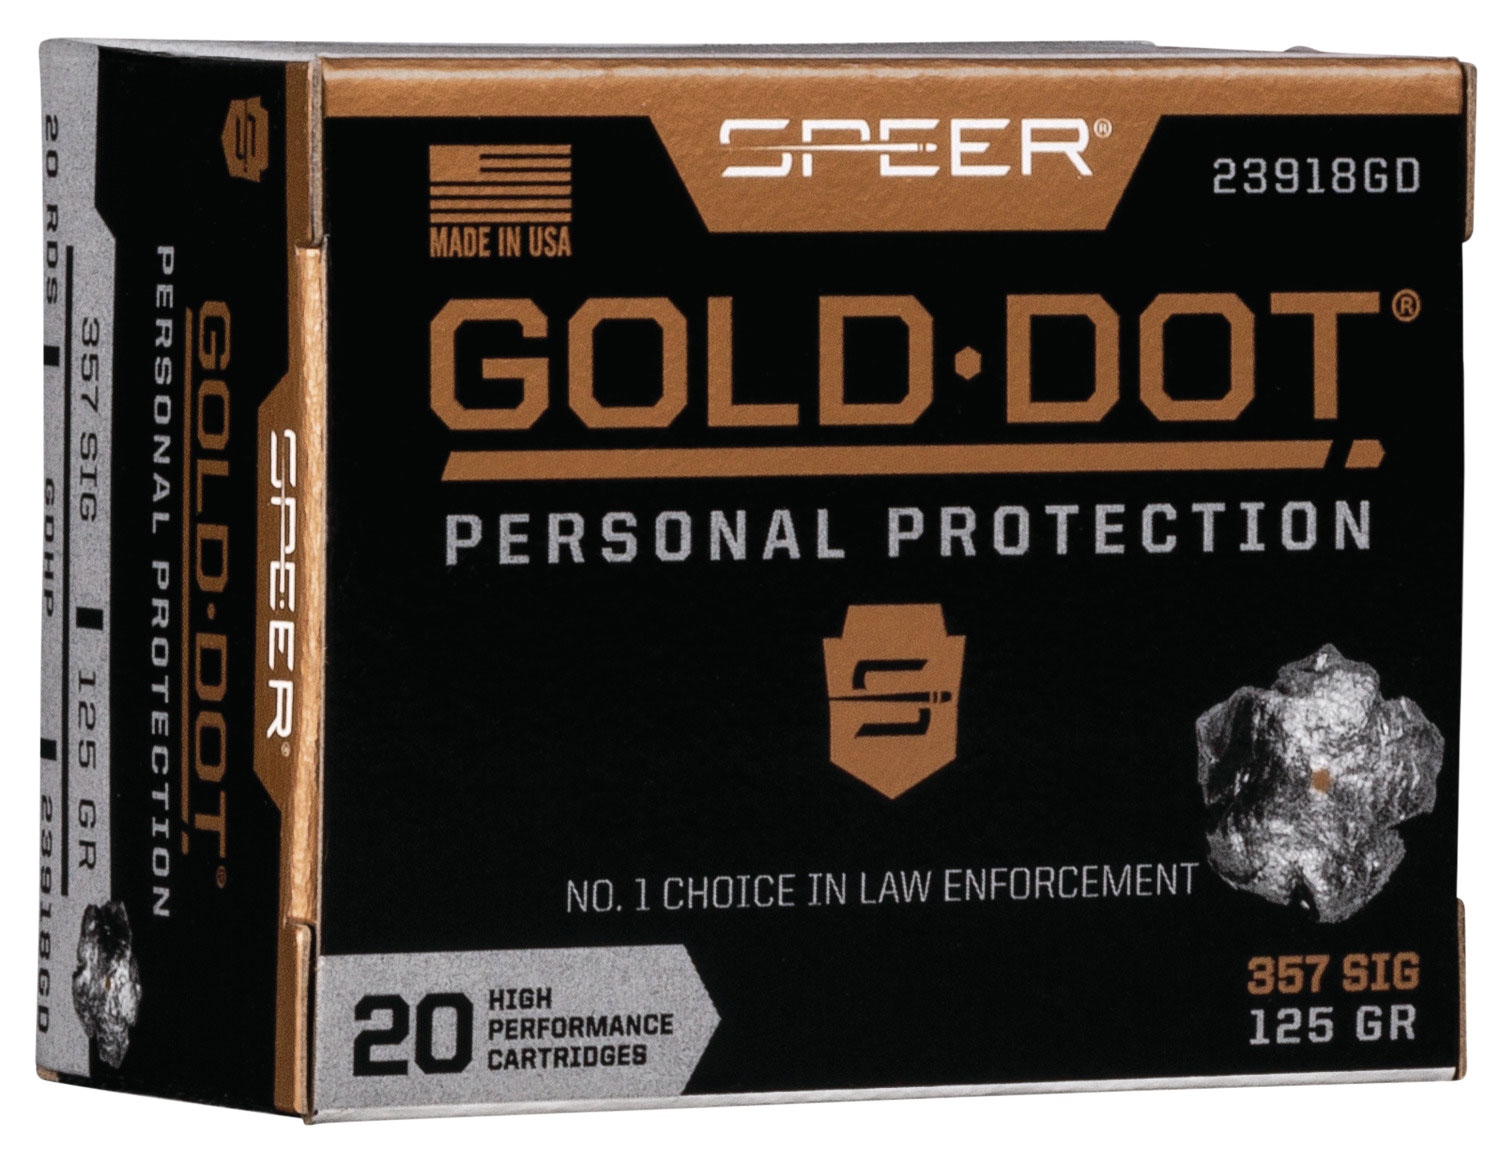 Speer Ammo 23918GD Gold Dot Personal Protection  357 Sig 125 GR Hollow Point 20 Bx/ 10 Cs